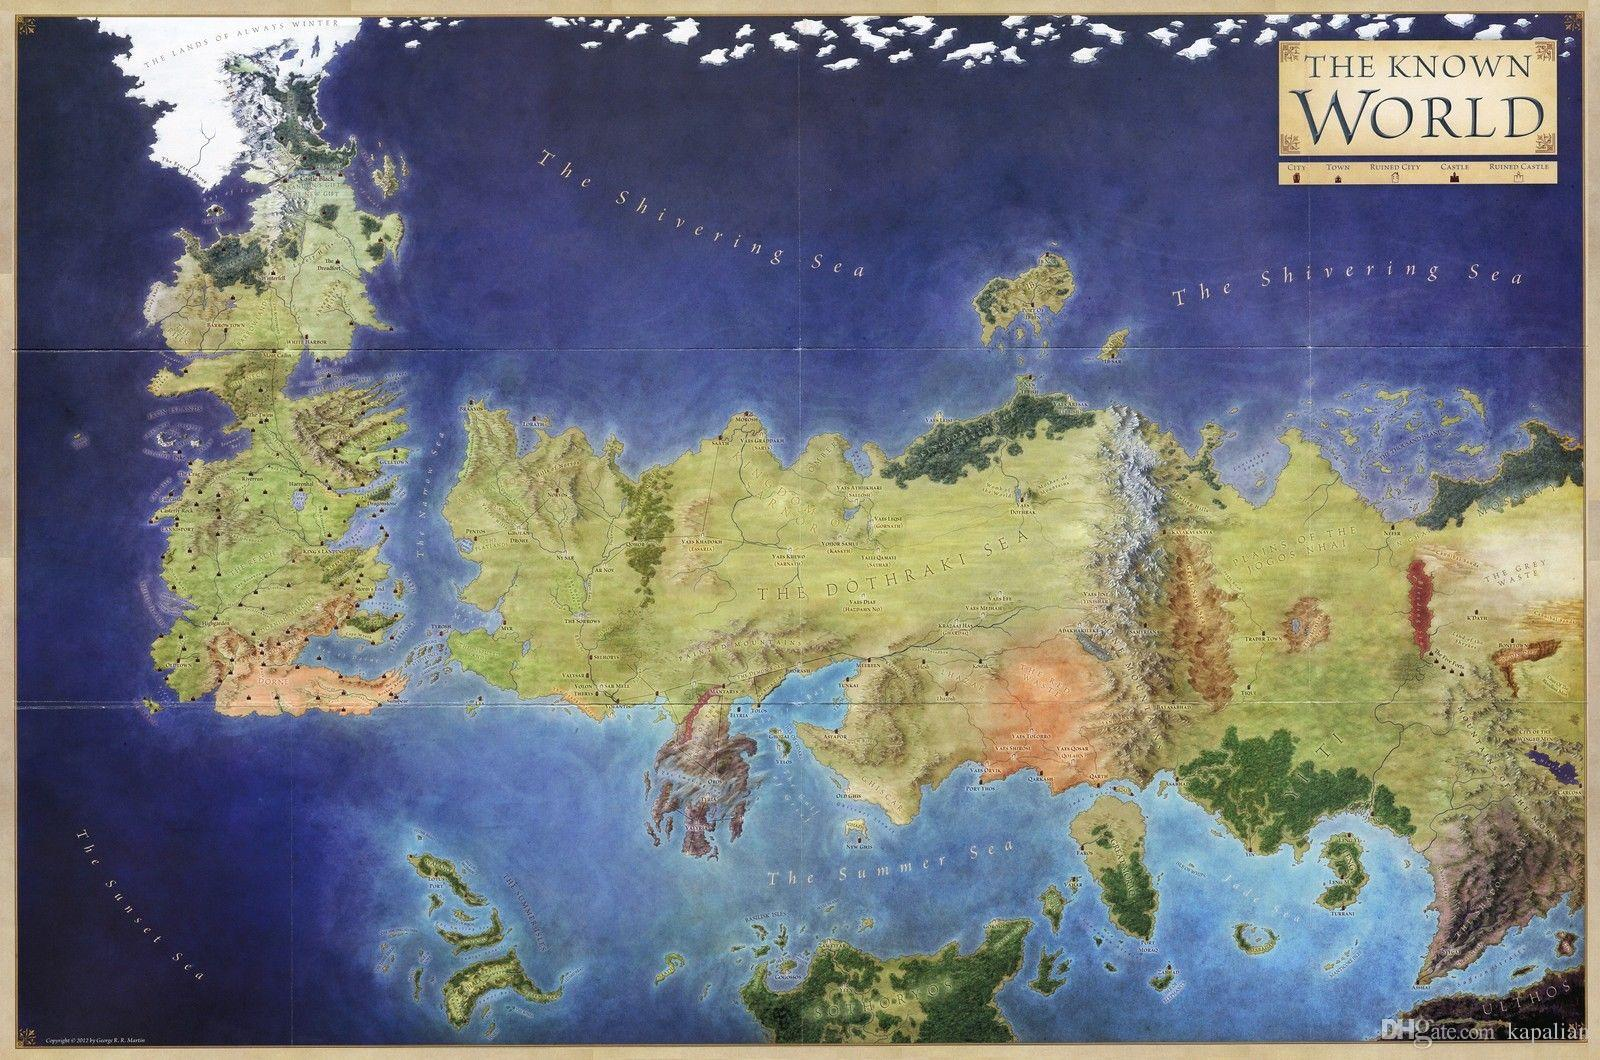 2018 game of thrones the known world map in colour poster printing 2018 game of thrones the known world map in colour poster printing home decor art posters print photopaper 16 24 36 47 inches from kapalian 964 dhgate gumiabroncs Gallery